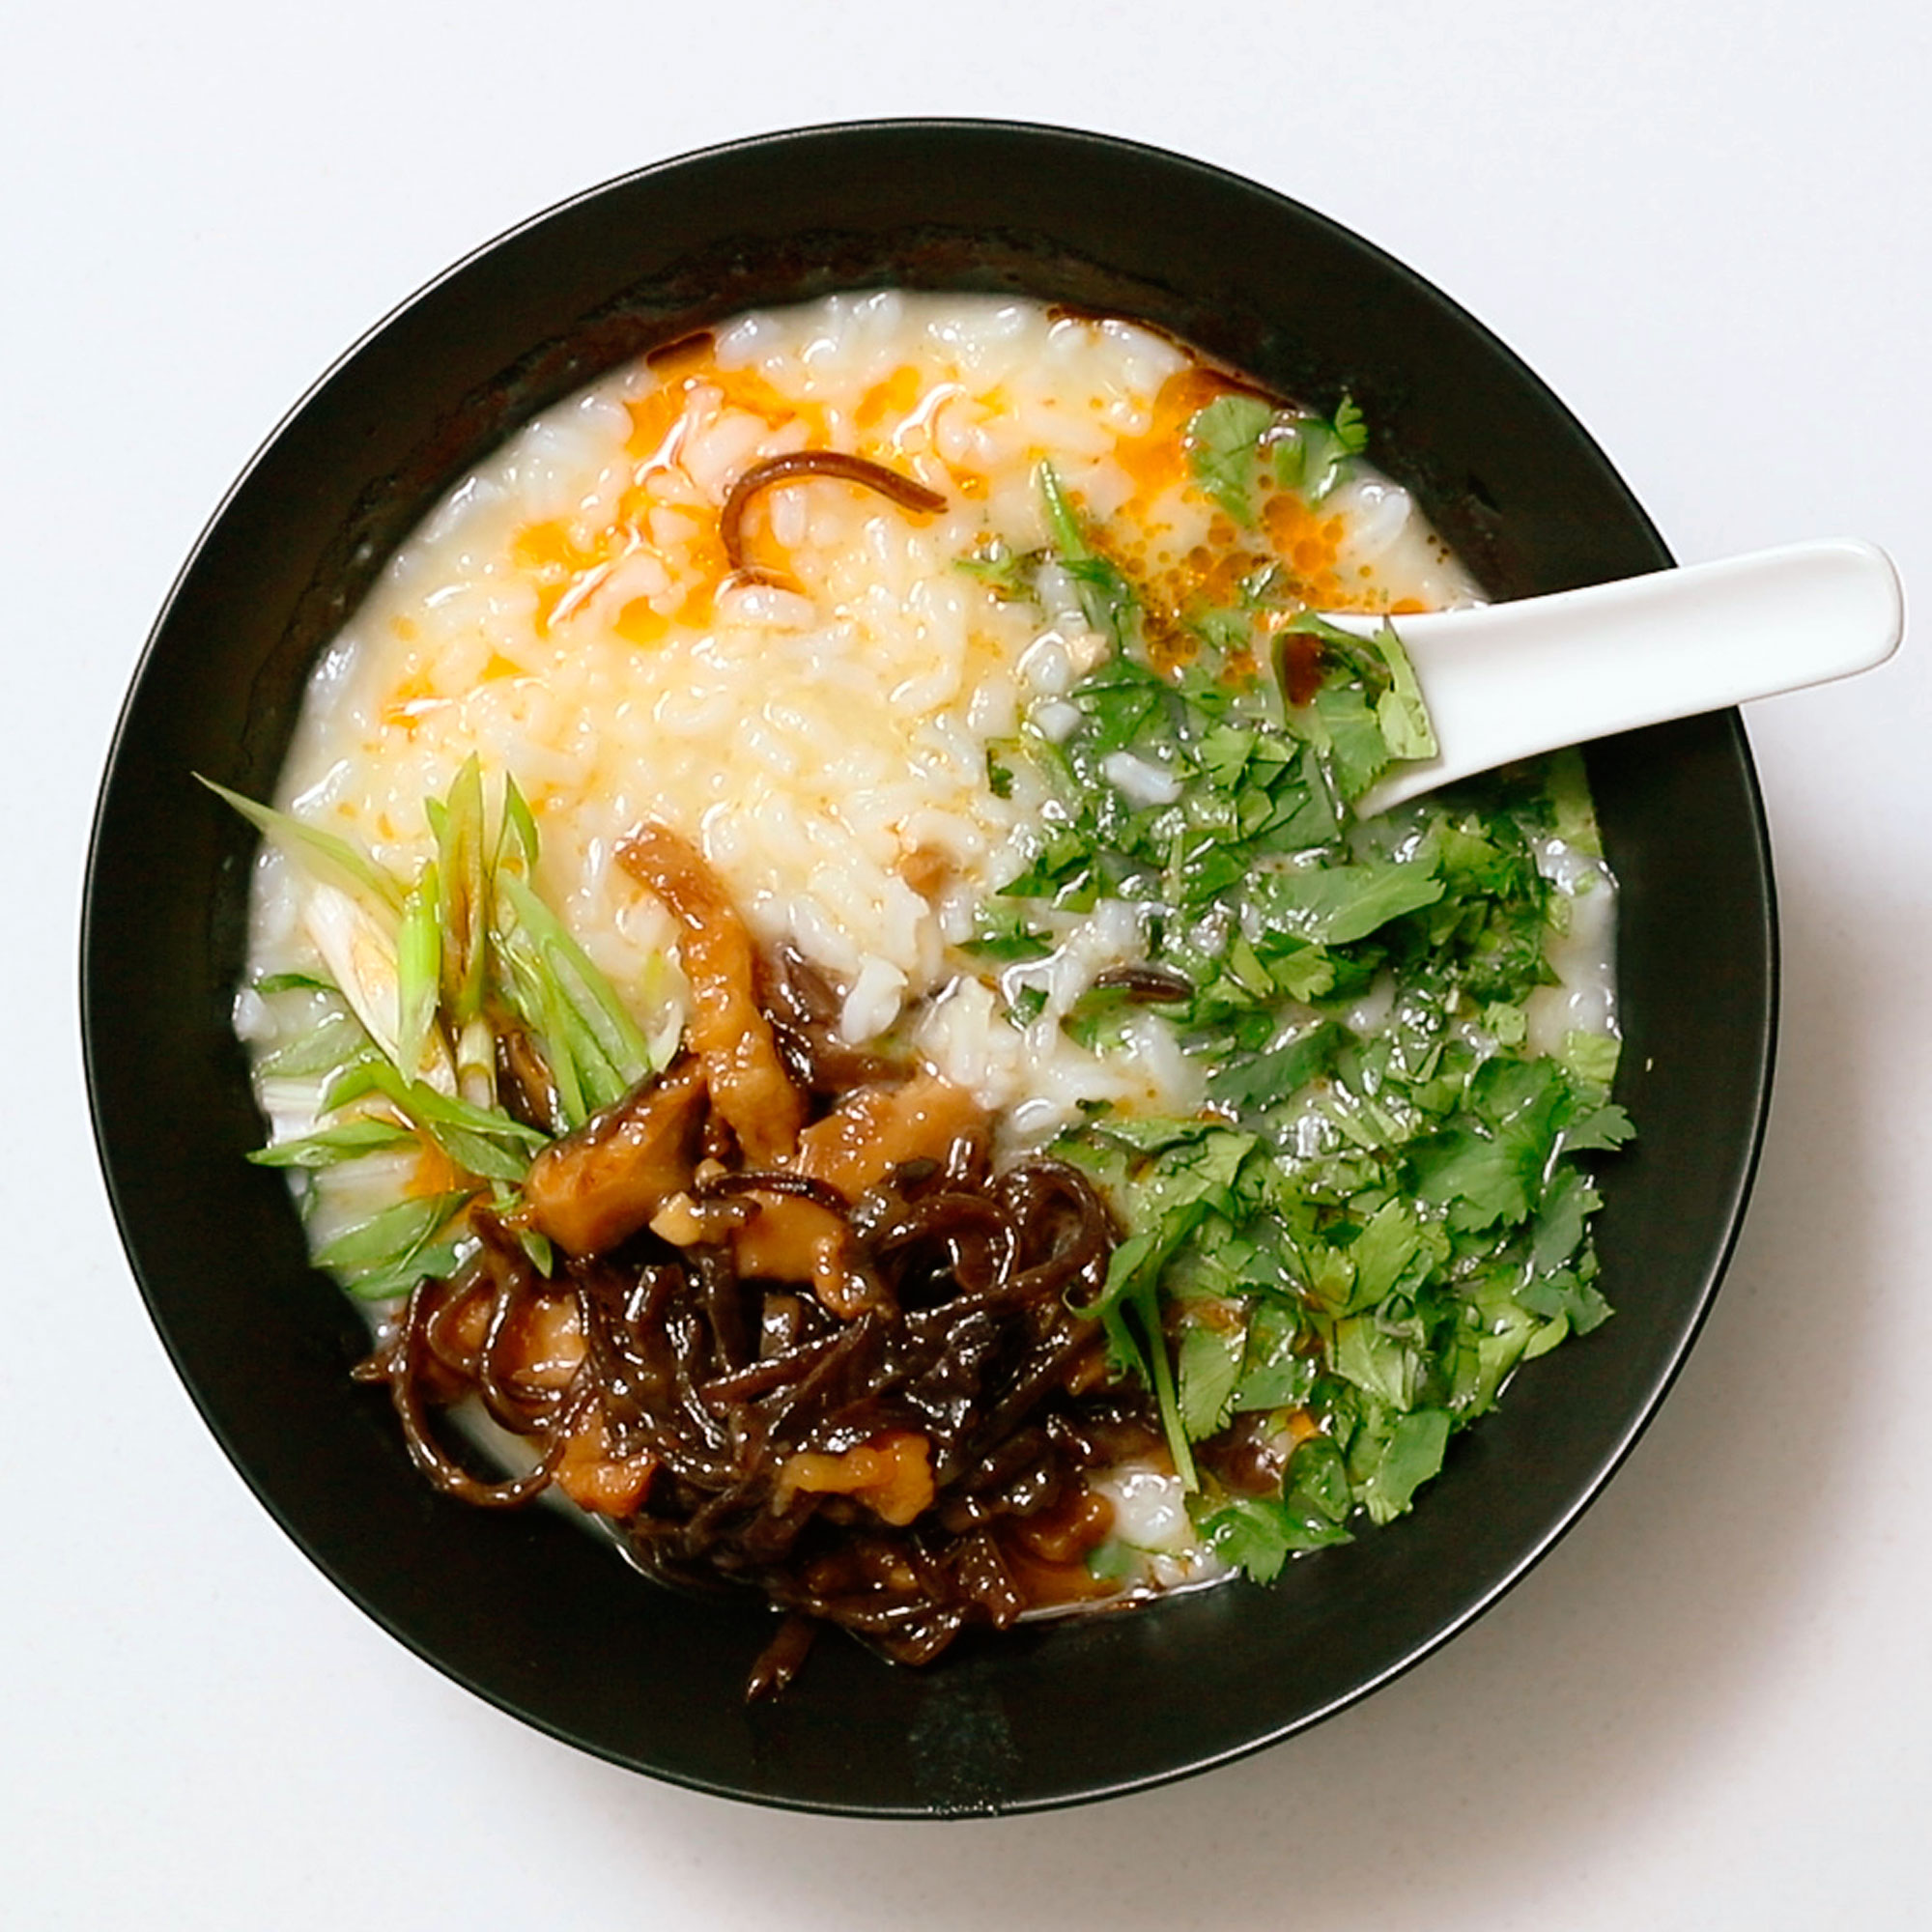 How to Make Pork Congee with Leftover Take-out Rice